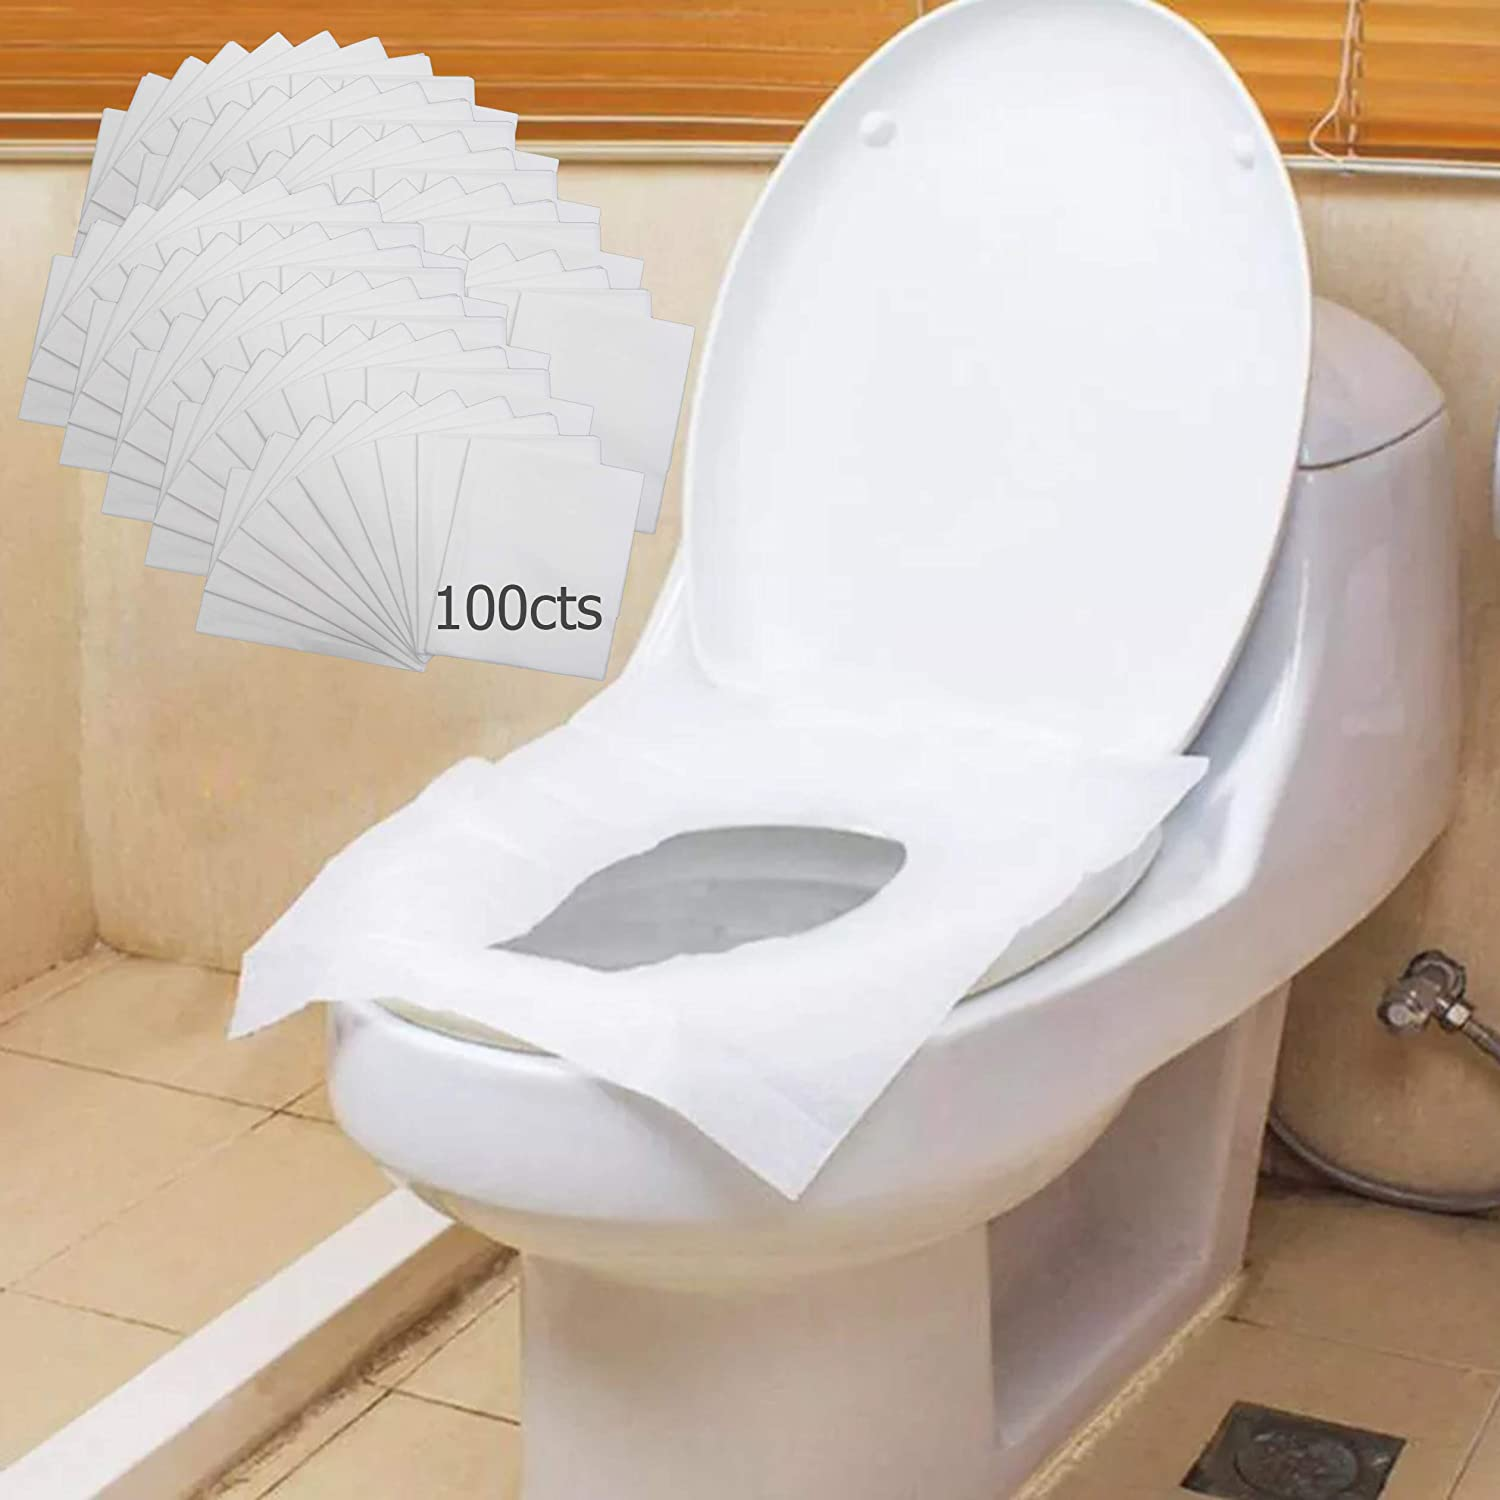 10 50 On the Go Hygiene Disposable Toilet Seat Covers Portable Set Great for Travel Home Office and For Kids Pack of 10 100 Potty Covers